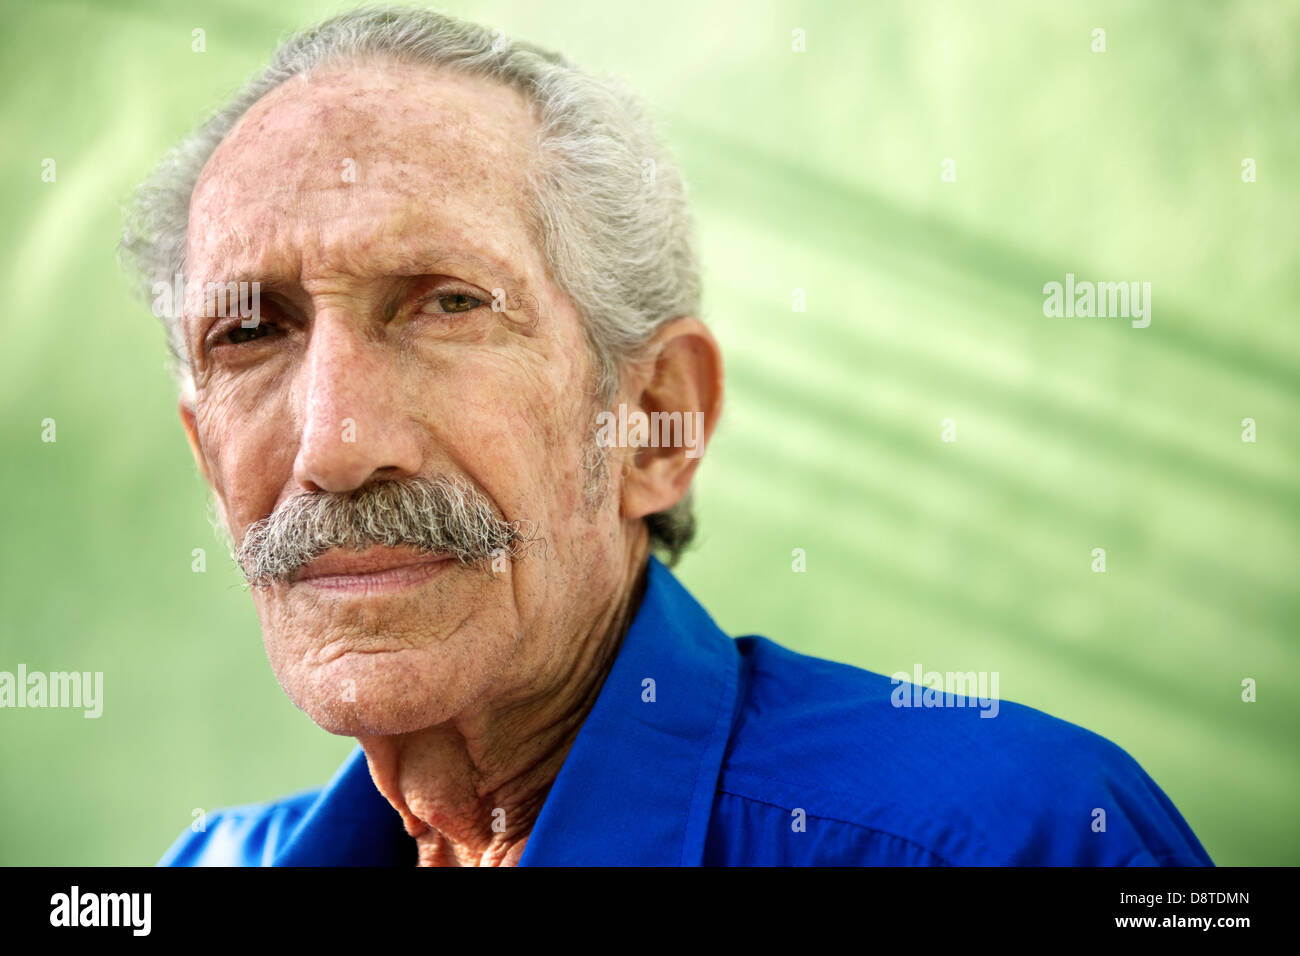 Elderly people and emotions, portrait of serious senior caucasian man looking at camera against green wall - Stock Image